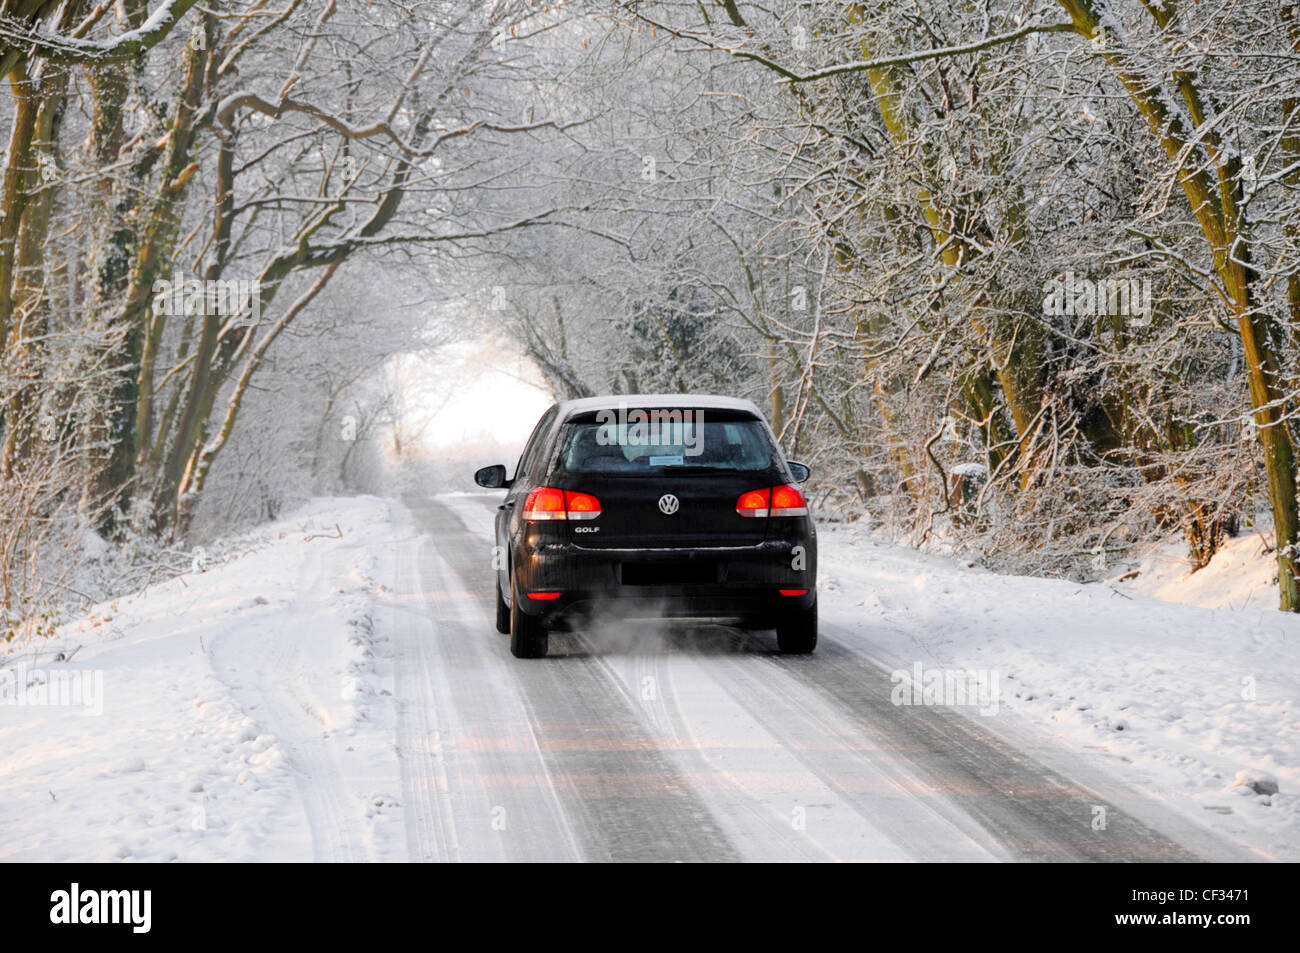 VW Golf car driving on snow covered road (obscured numberplate) - Stock Image